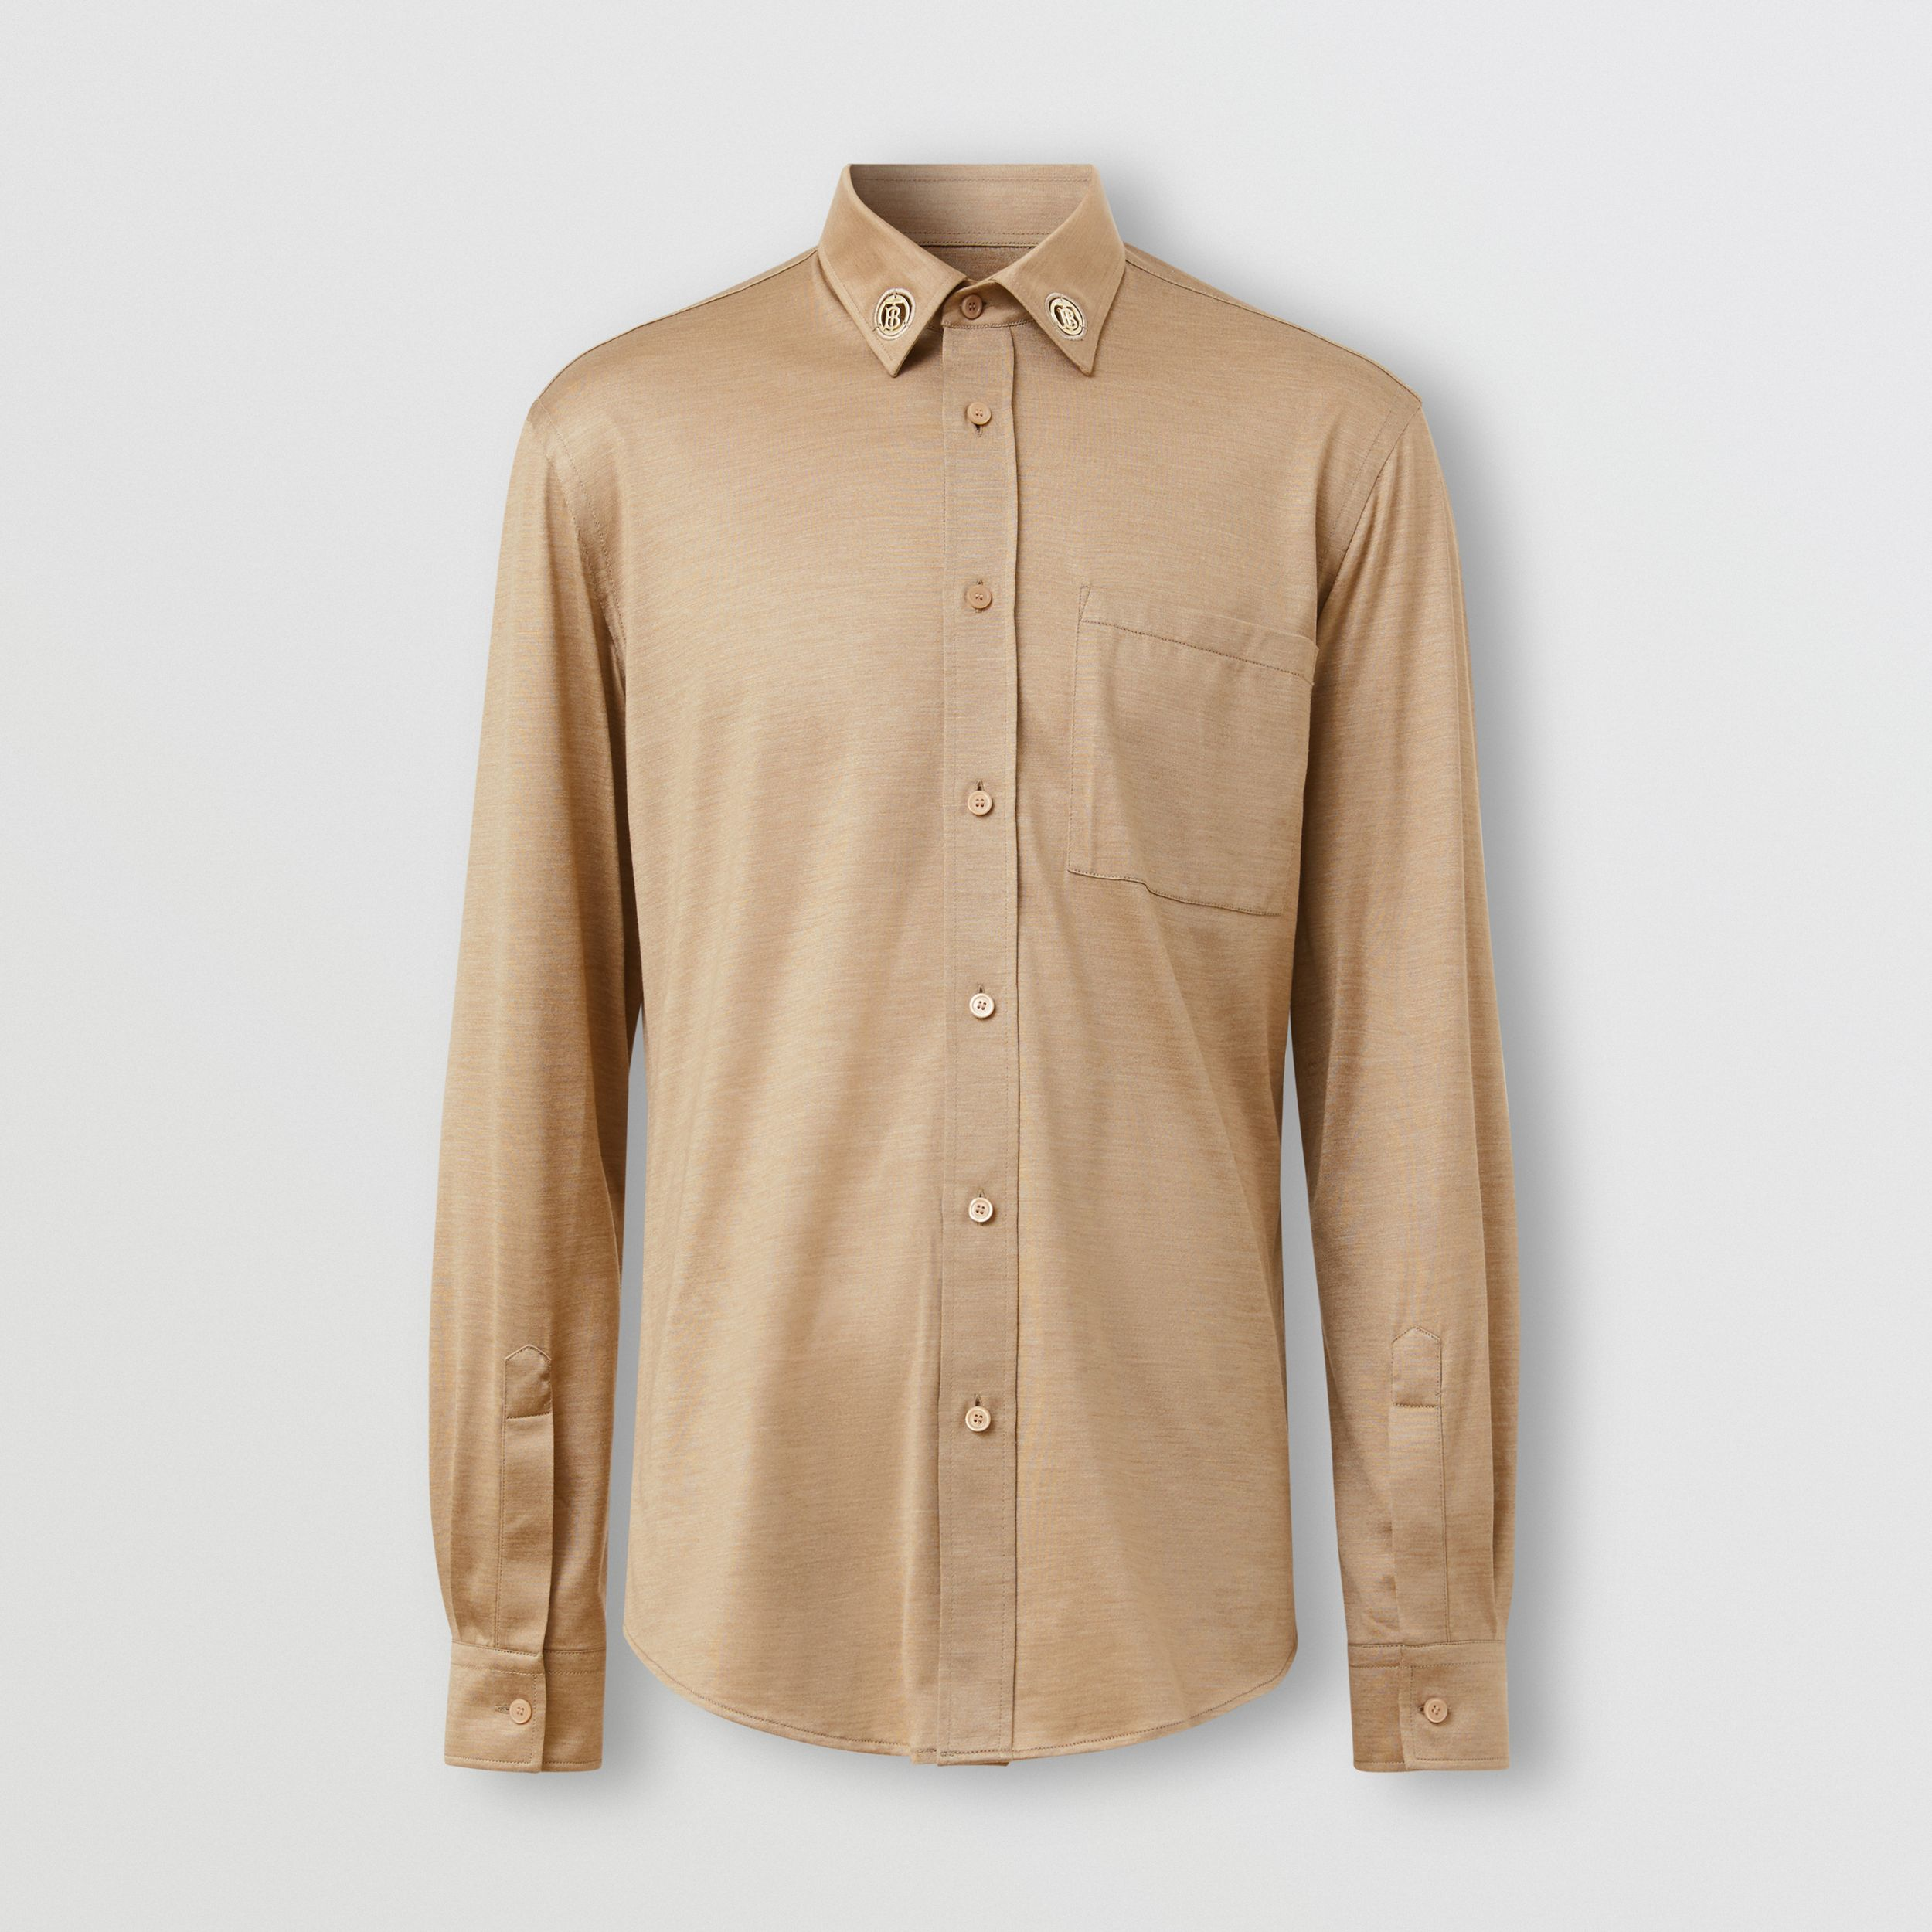 Classic Fit Monogram Motif Silk Jersey Shirt in Soft Fawn | Burberry Canada - 4